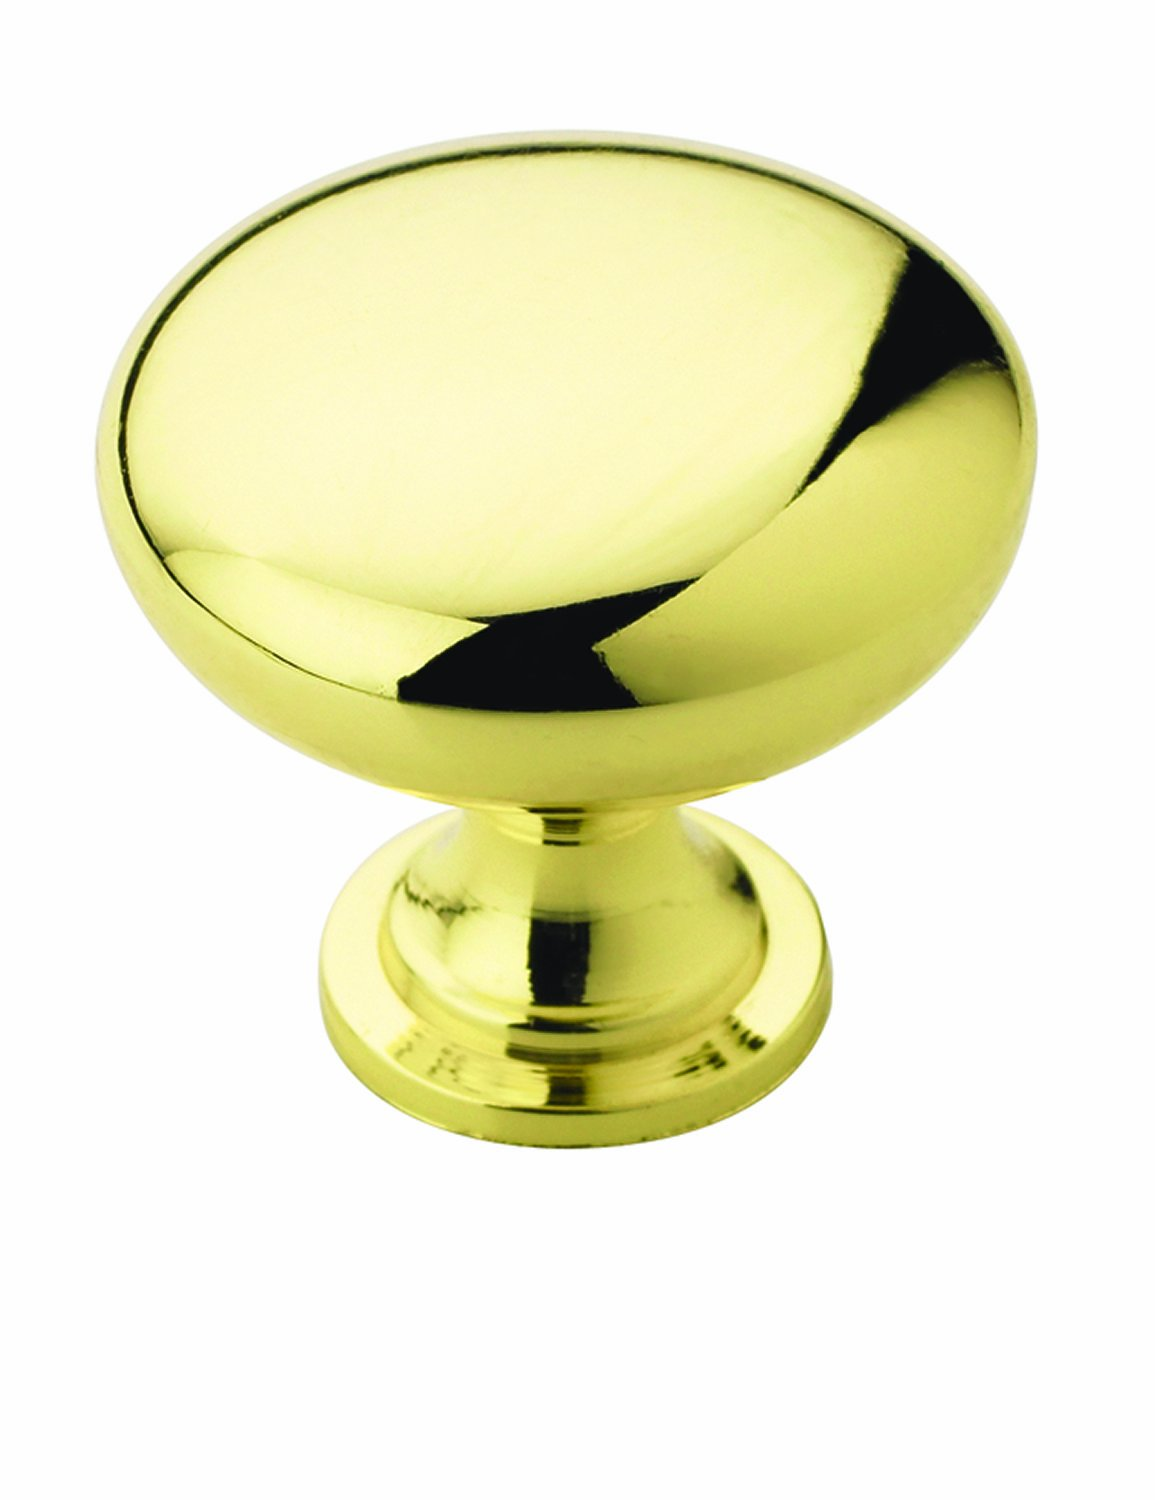 Amerock BP53005 3 Metal Finishes Knob Polished Brass, 1 1/4 Inch Diameter    Cabinet And Furniture Pulls   Amazon.com